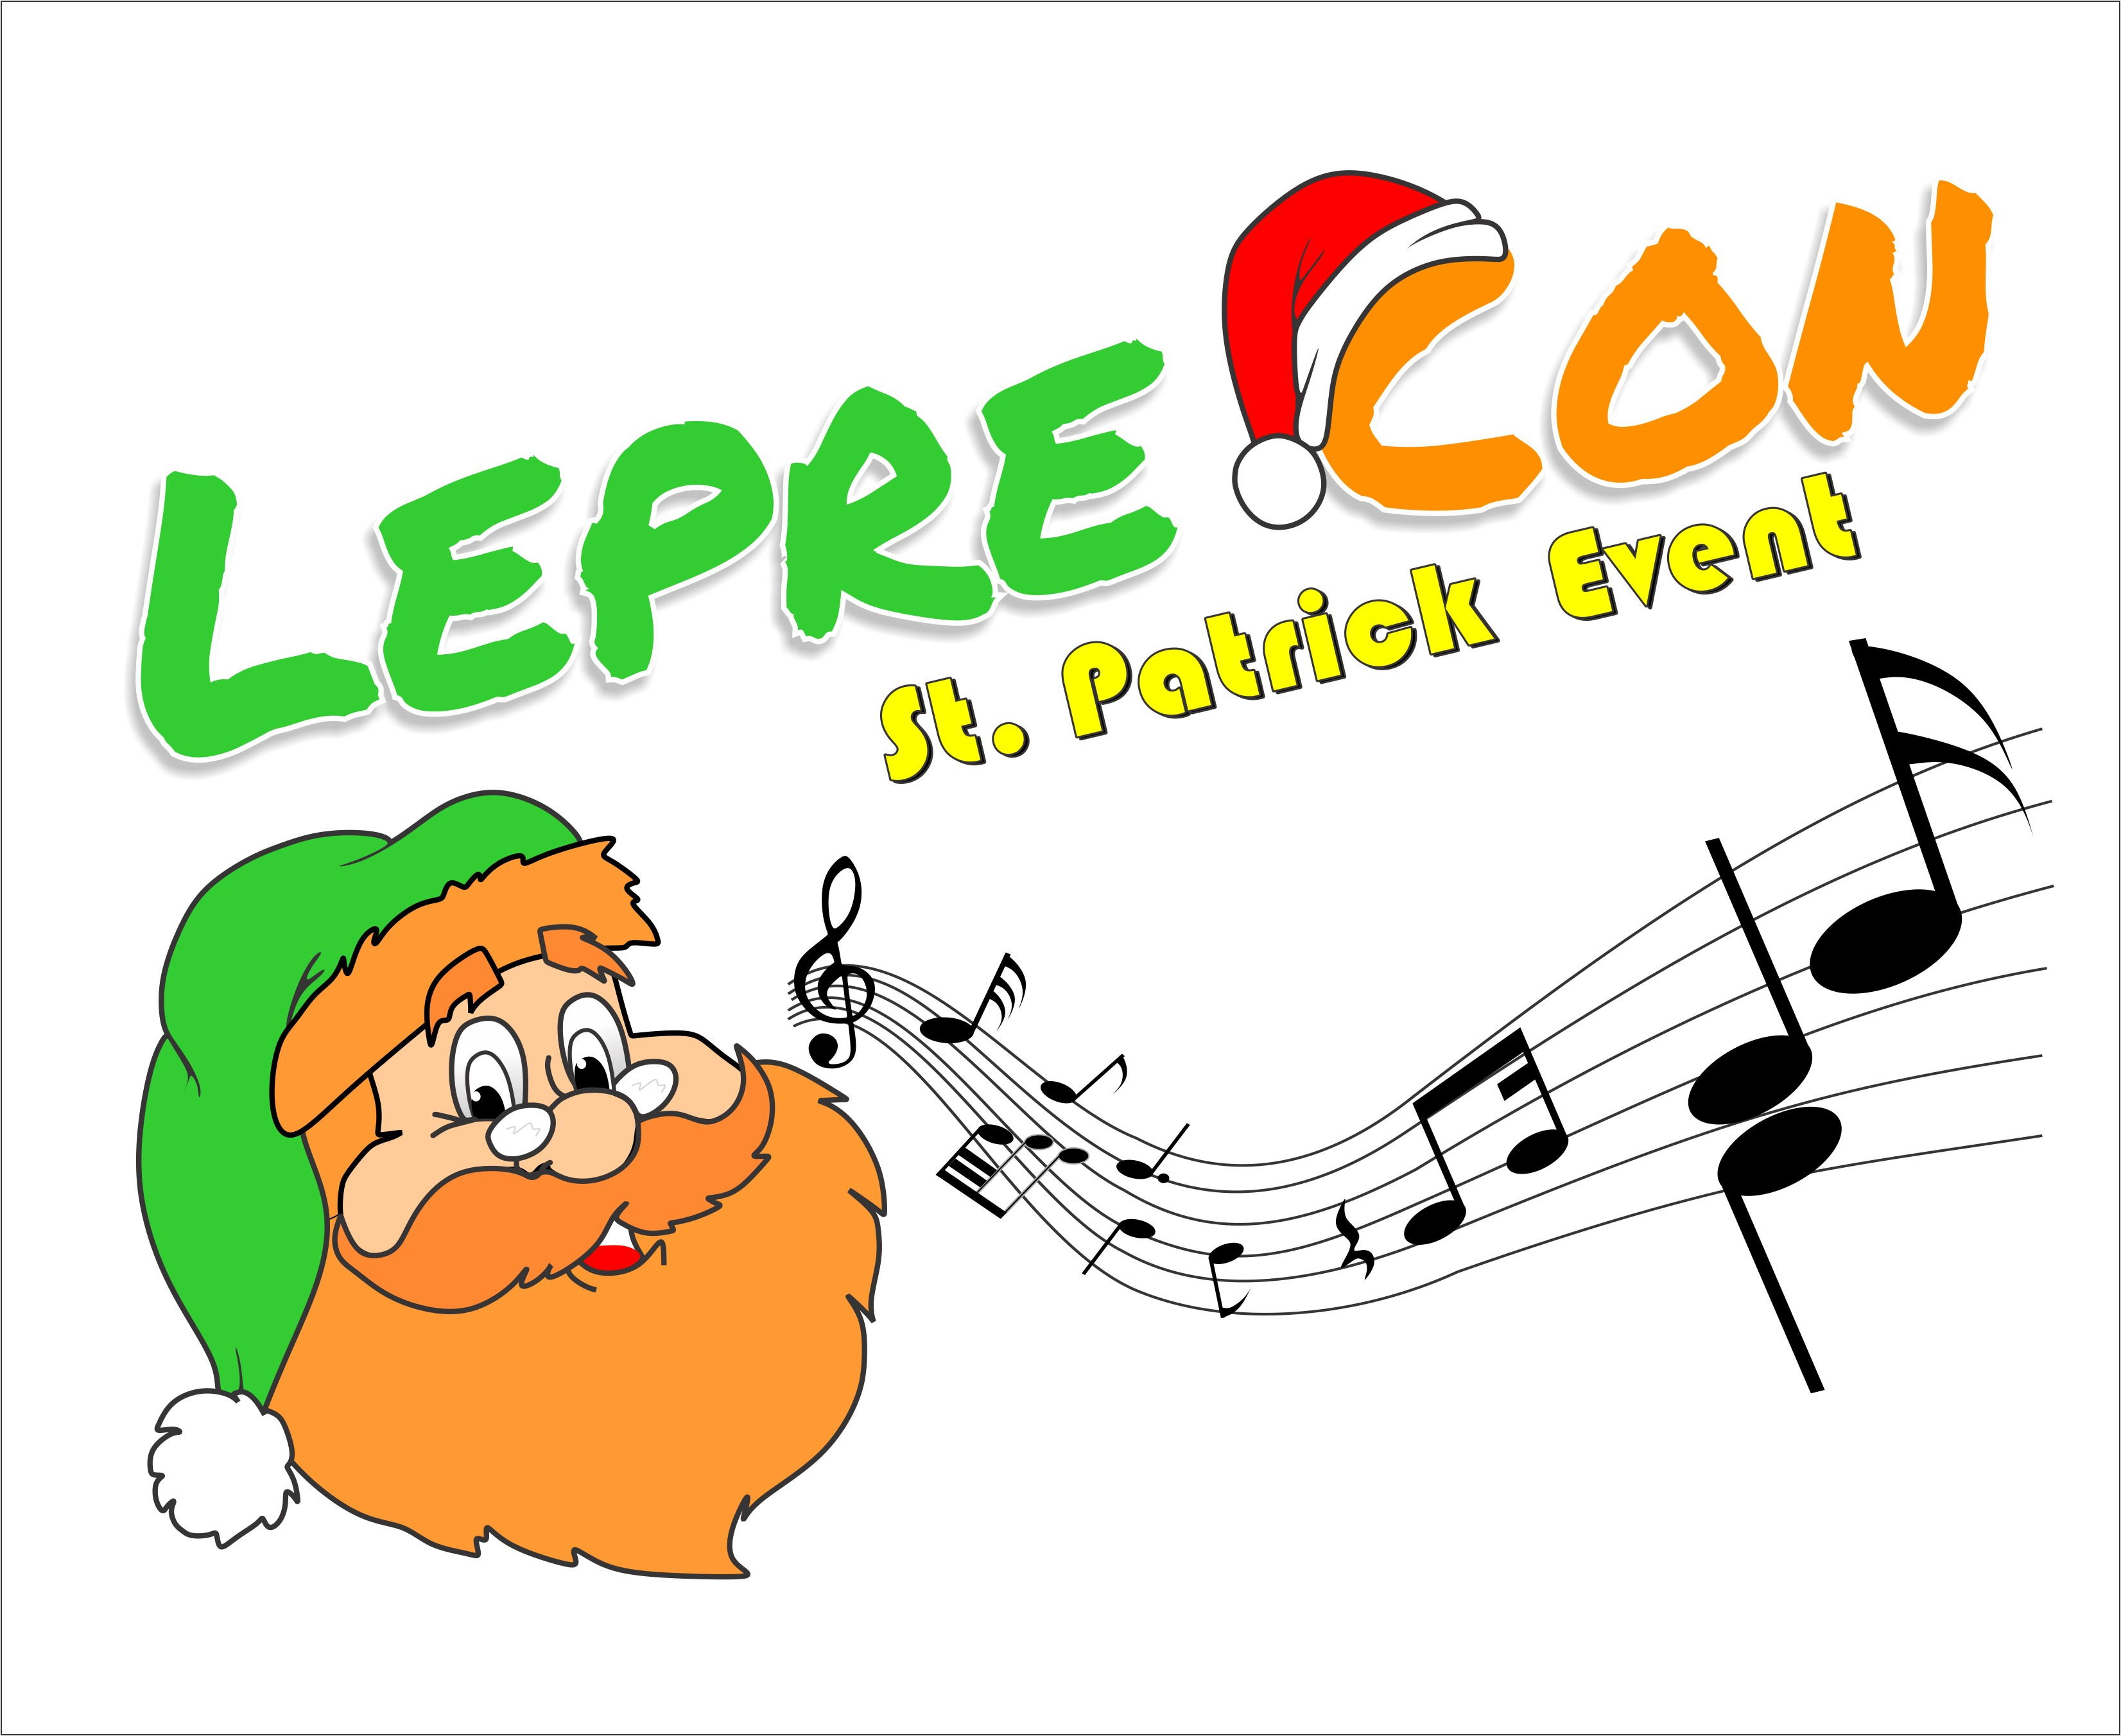 Logo Design by Mhon_Rose - Entry No. 22 in the Logo Design Contest FUN Logo Design for *LepreCon* St. Patrick's Event [WILL END EARLY JAN. 26].